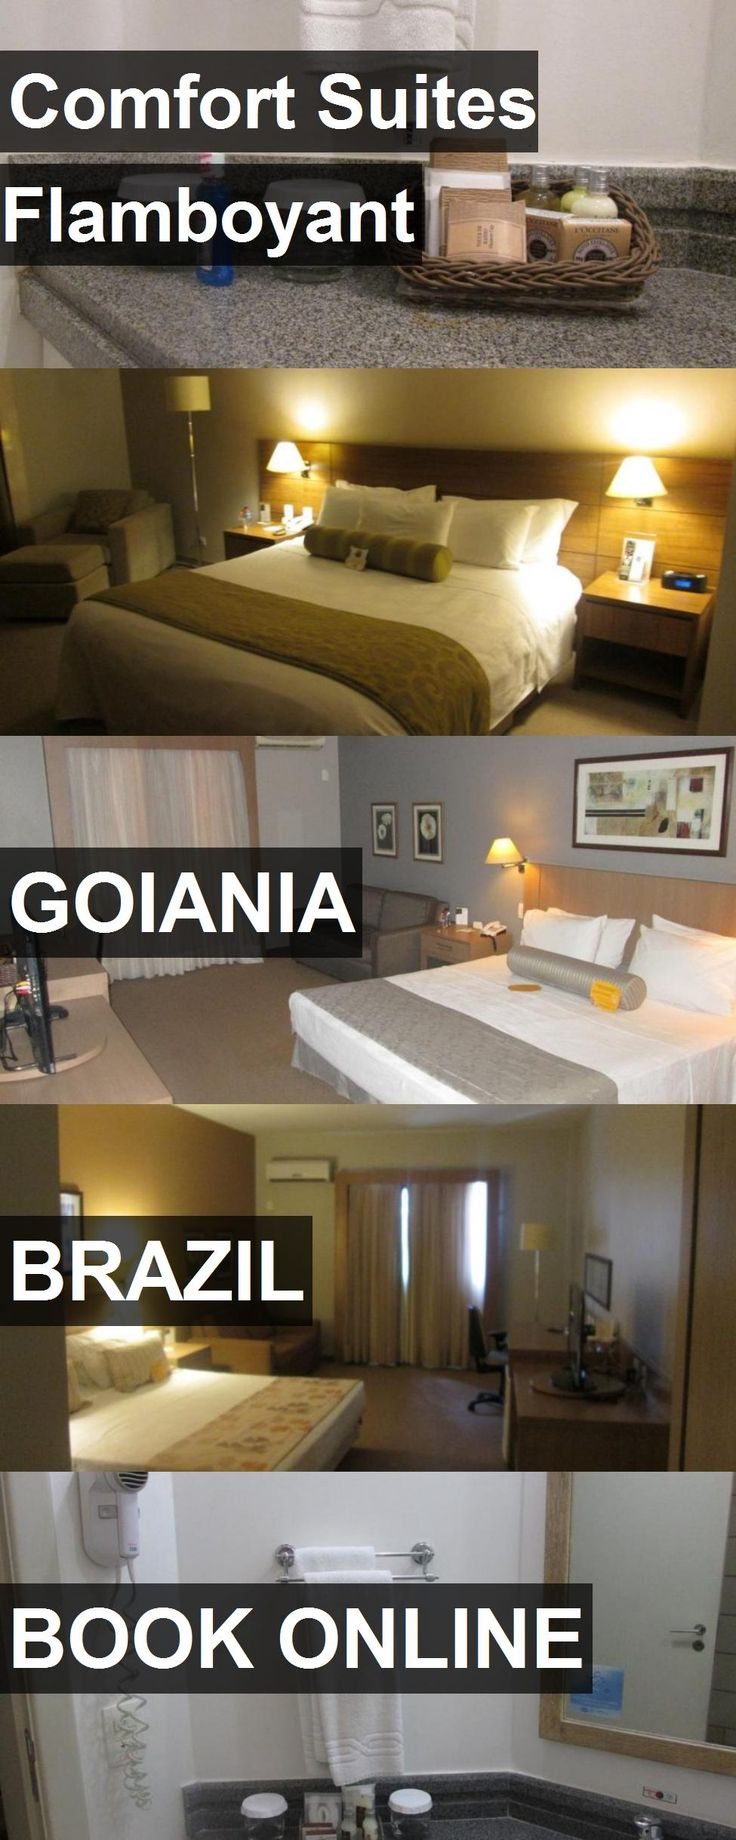 Hotel Comfort Suites Flamboyant in Goiania, Brazil. For more information, photos, reviews and best prices please follow the link. #Brazil #Goiania #travel #vacation #hotel